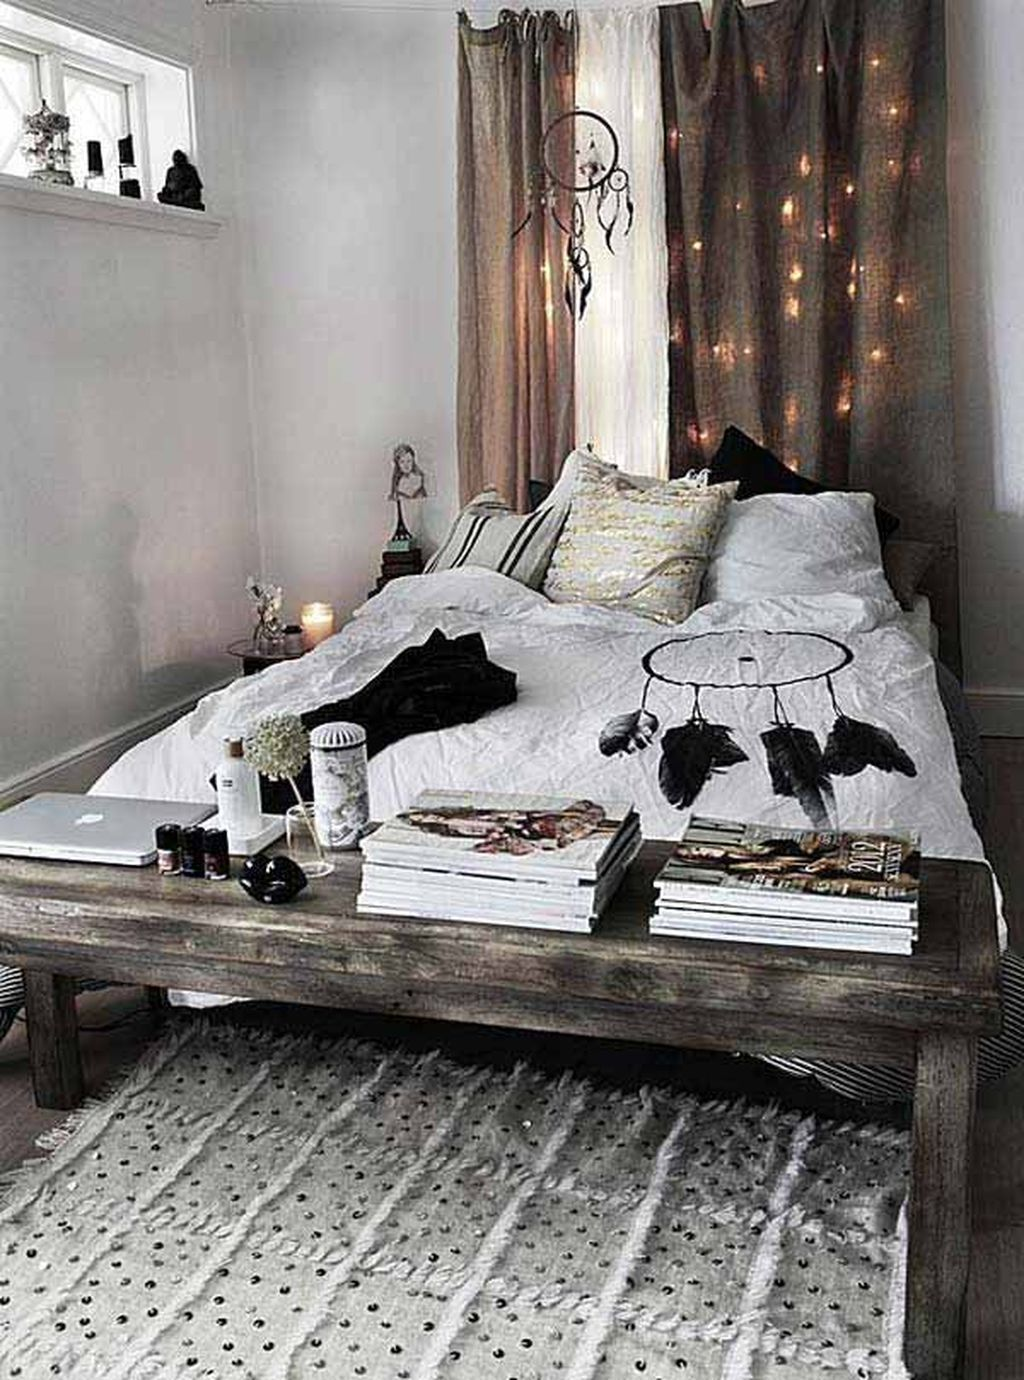 37 Boho Chic Home Décor Ideas With Mexican TouchesHomeDecorish